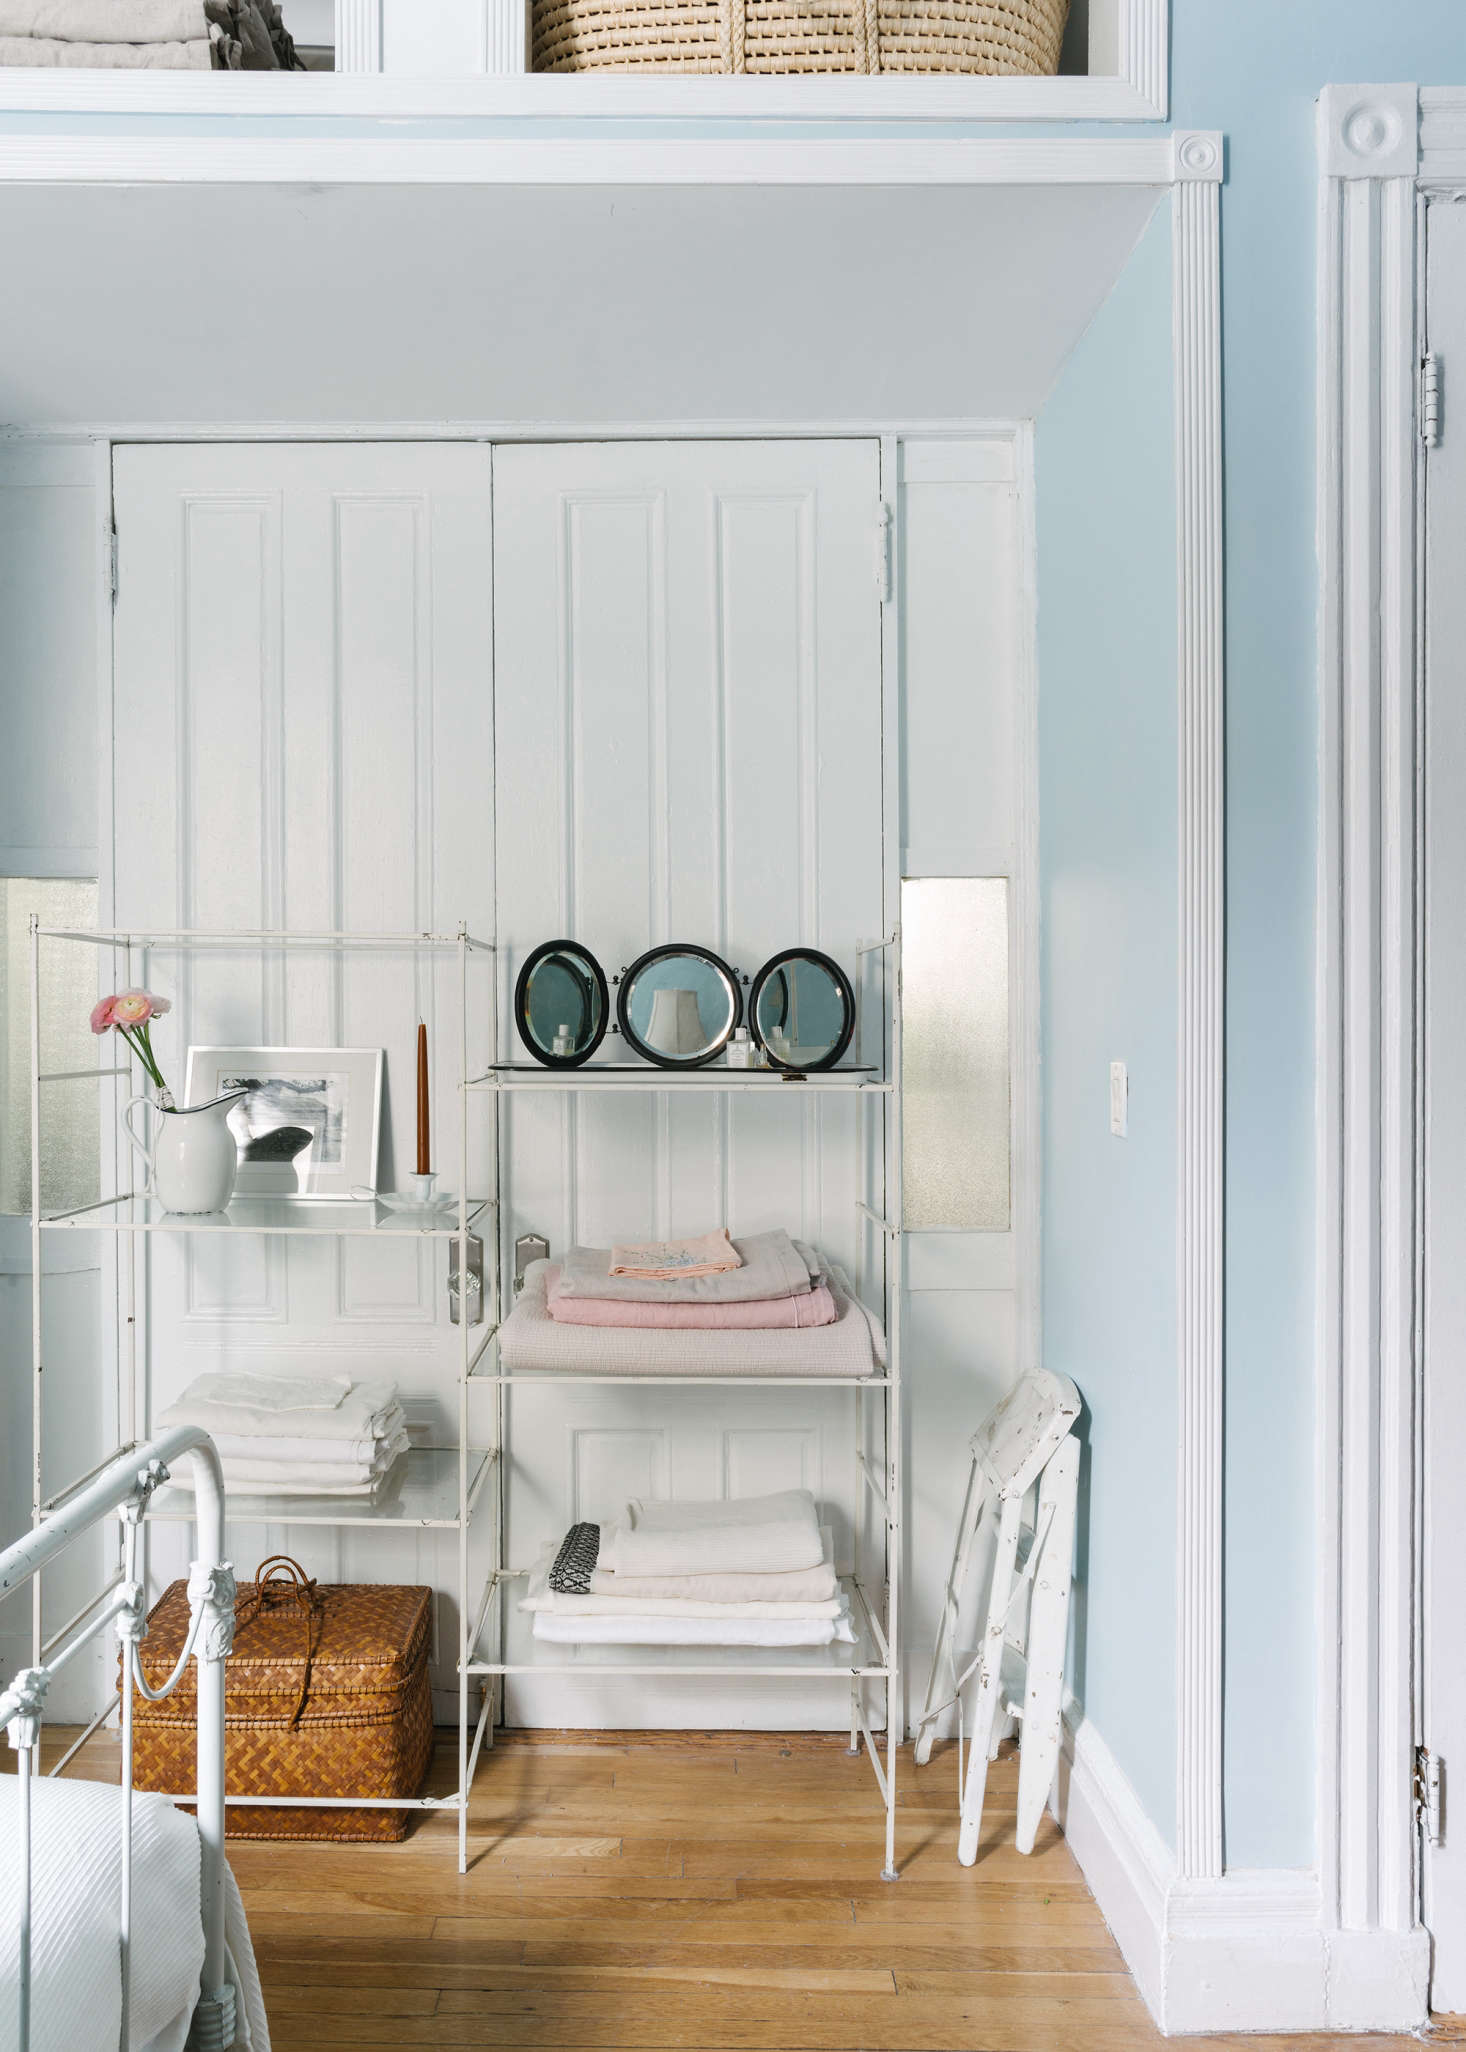 A glass shelf bought on a whim at ABC Carpet & Home (something similar is the ABC DNA Synthesis Shelf) stores linens in a French door alcove between the bedroom and living room.